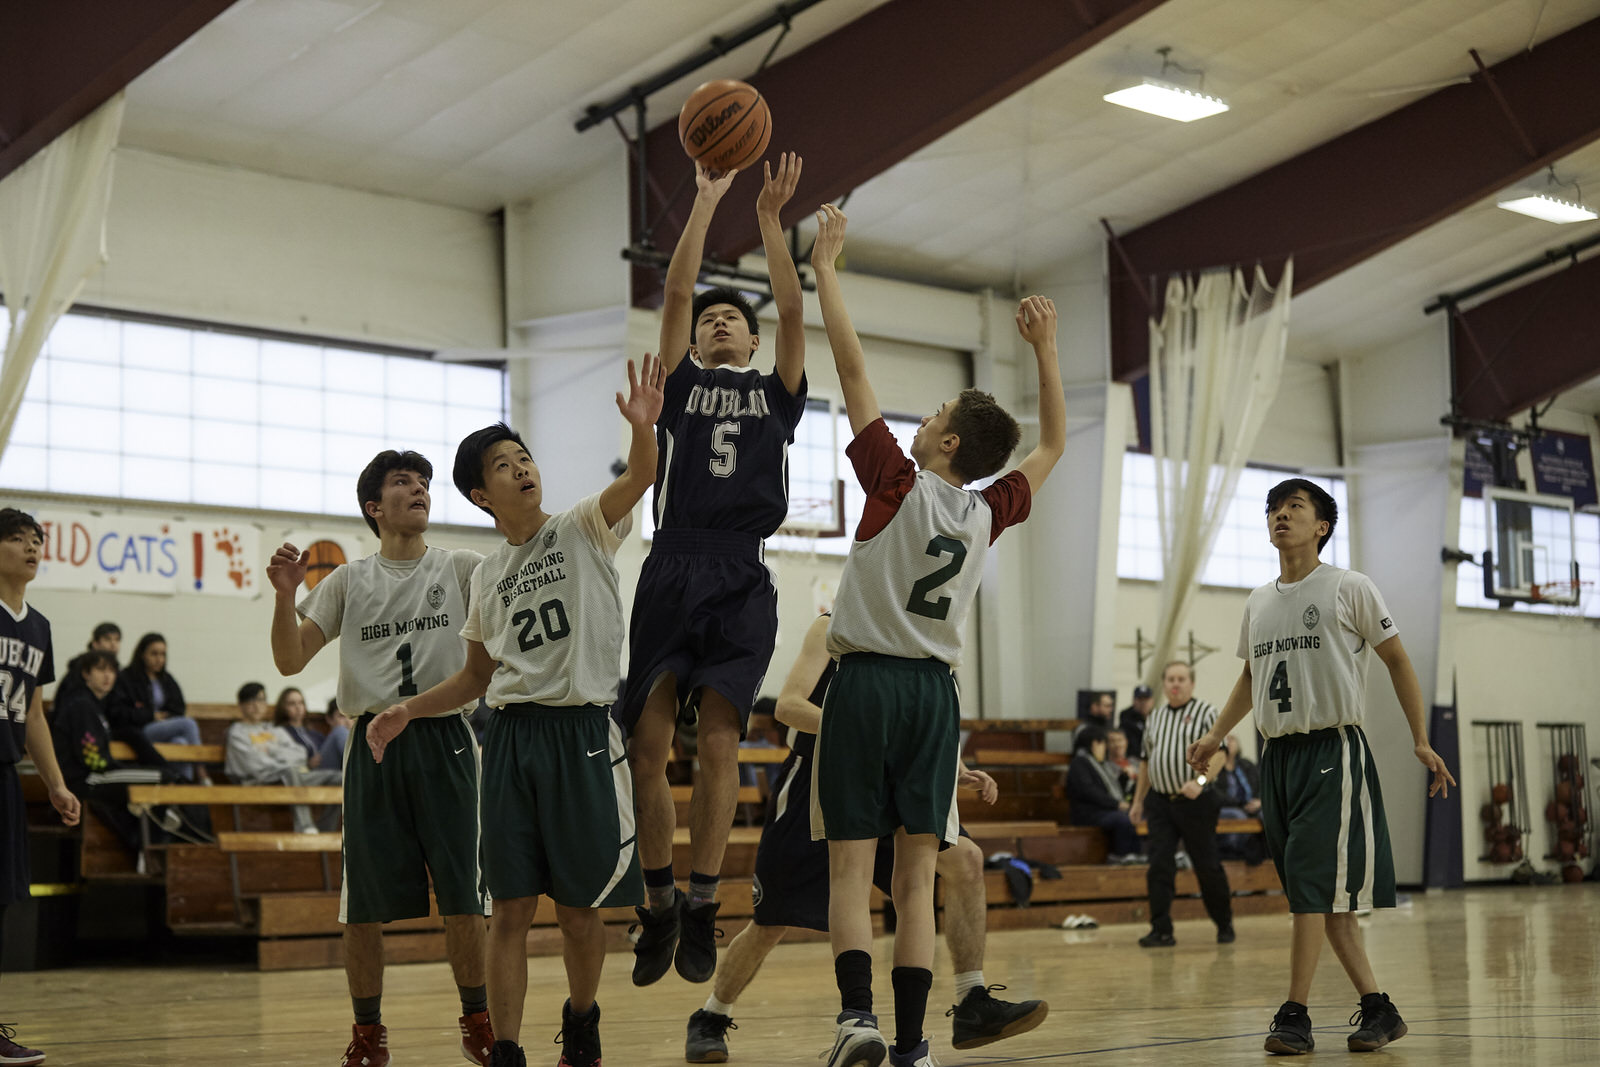 Dublin JV Boys Basketball vs High Mowing School - Jan 26 2019 - 0198.jpg